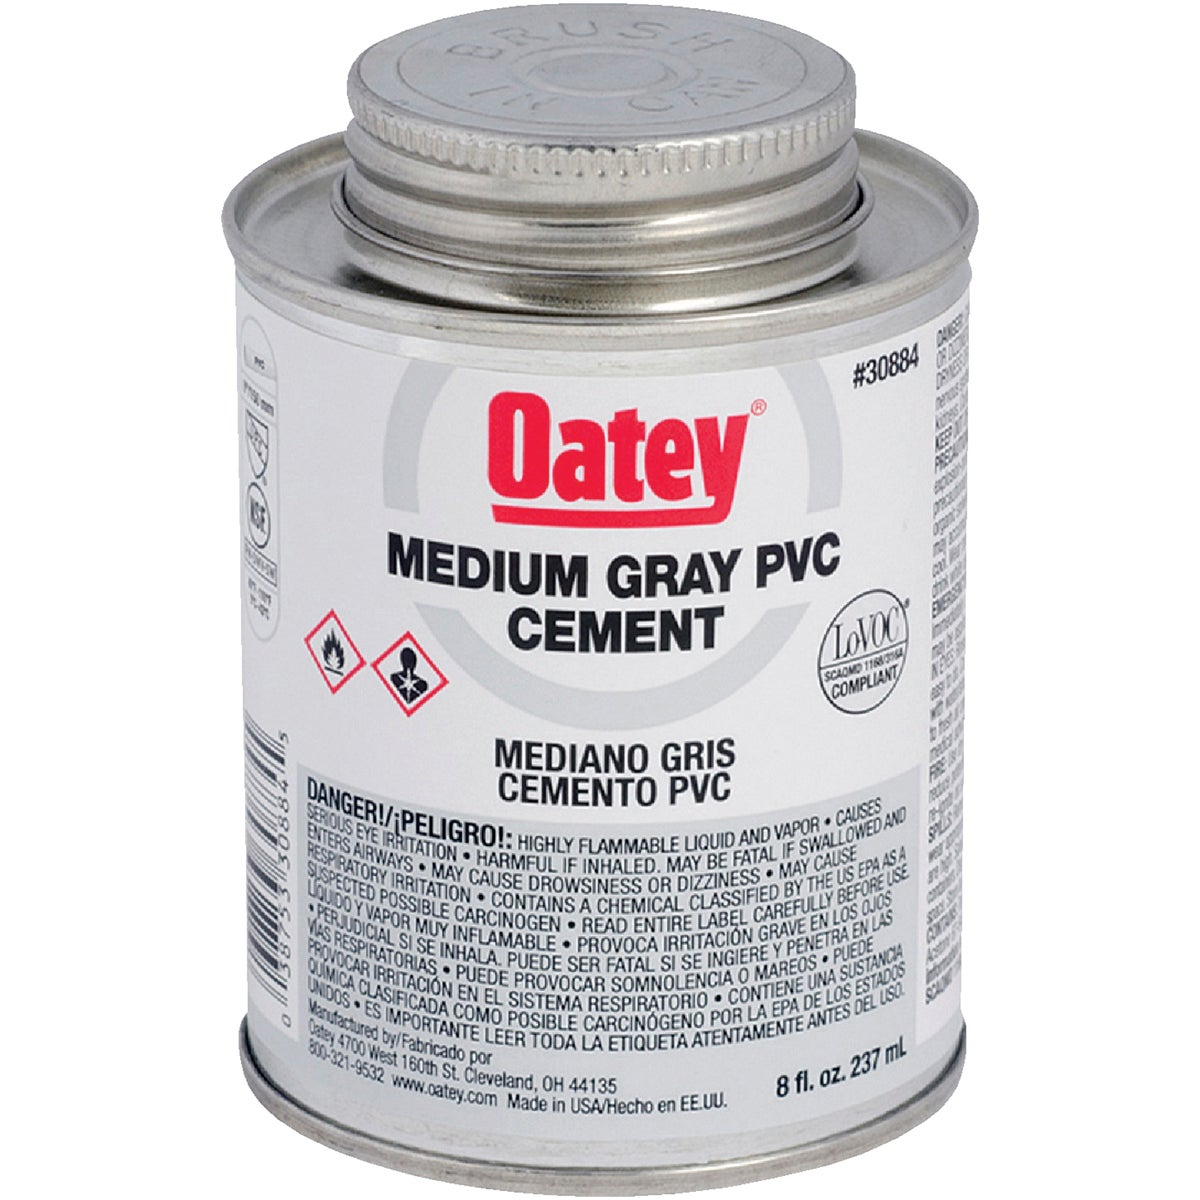 1/2PINT PVC CEMENT - 30884 by Oatey Scs